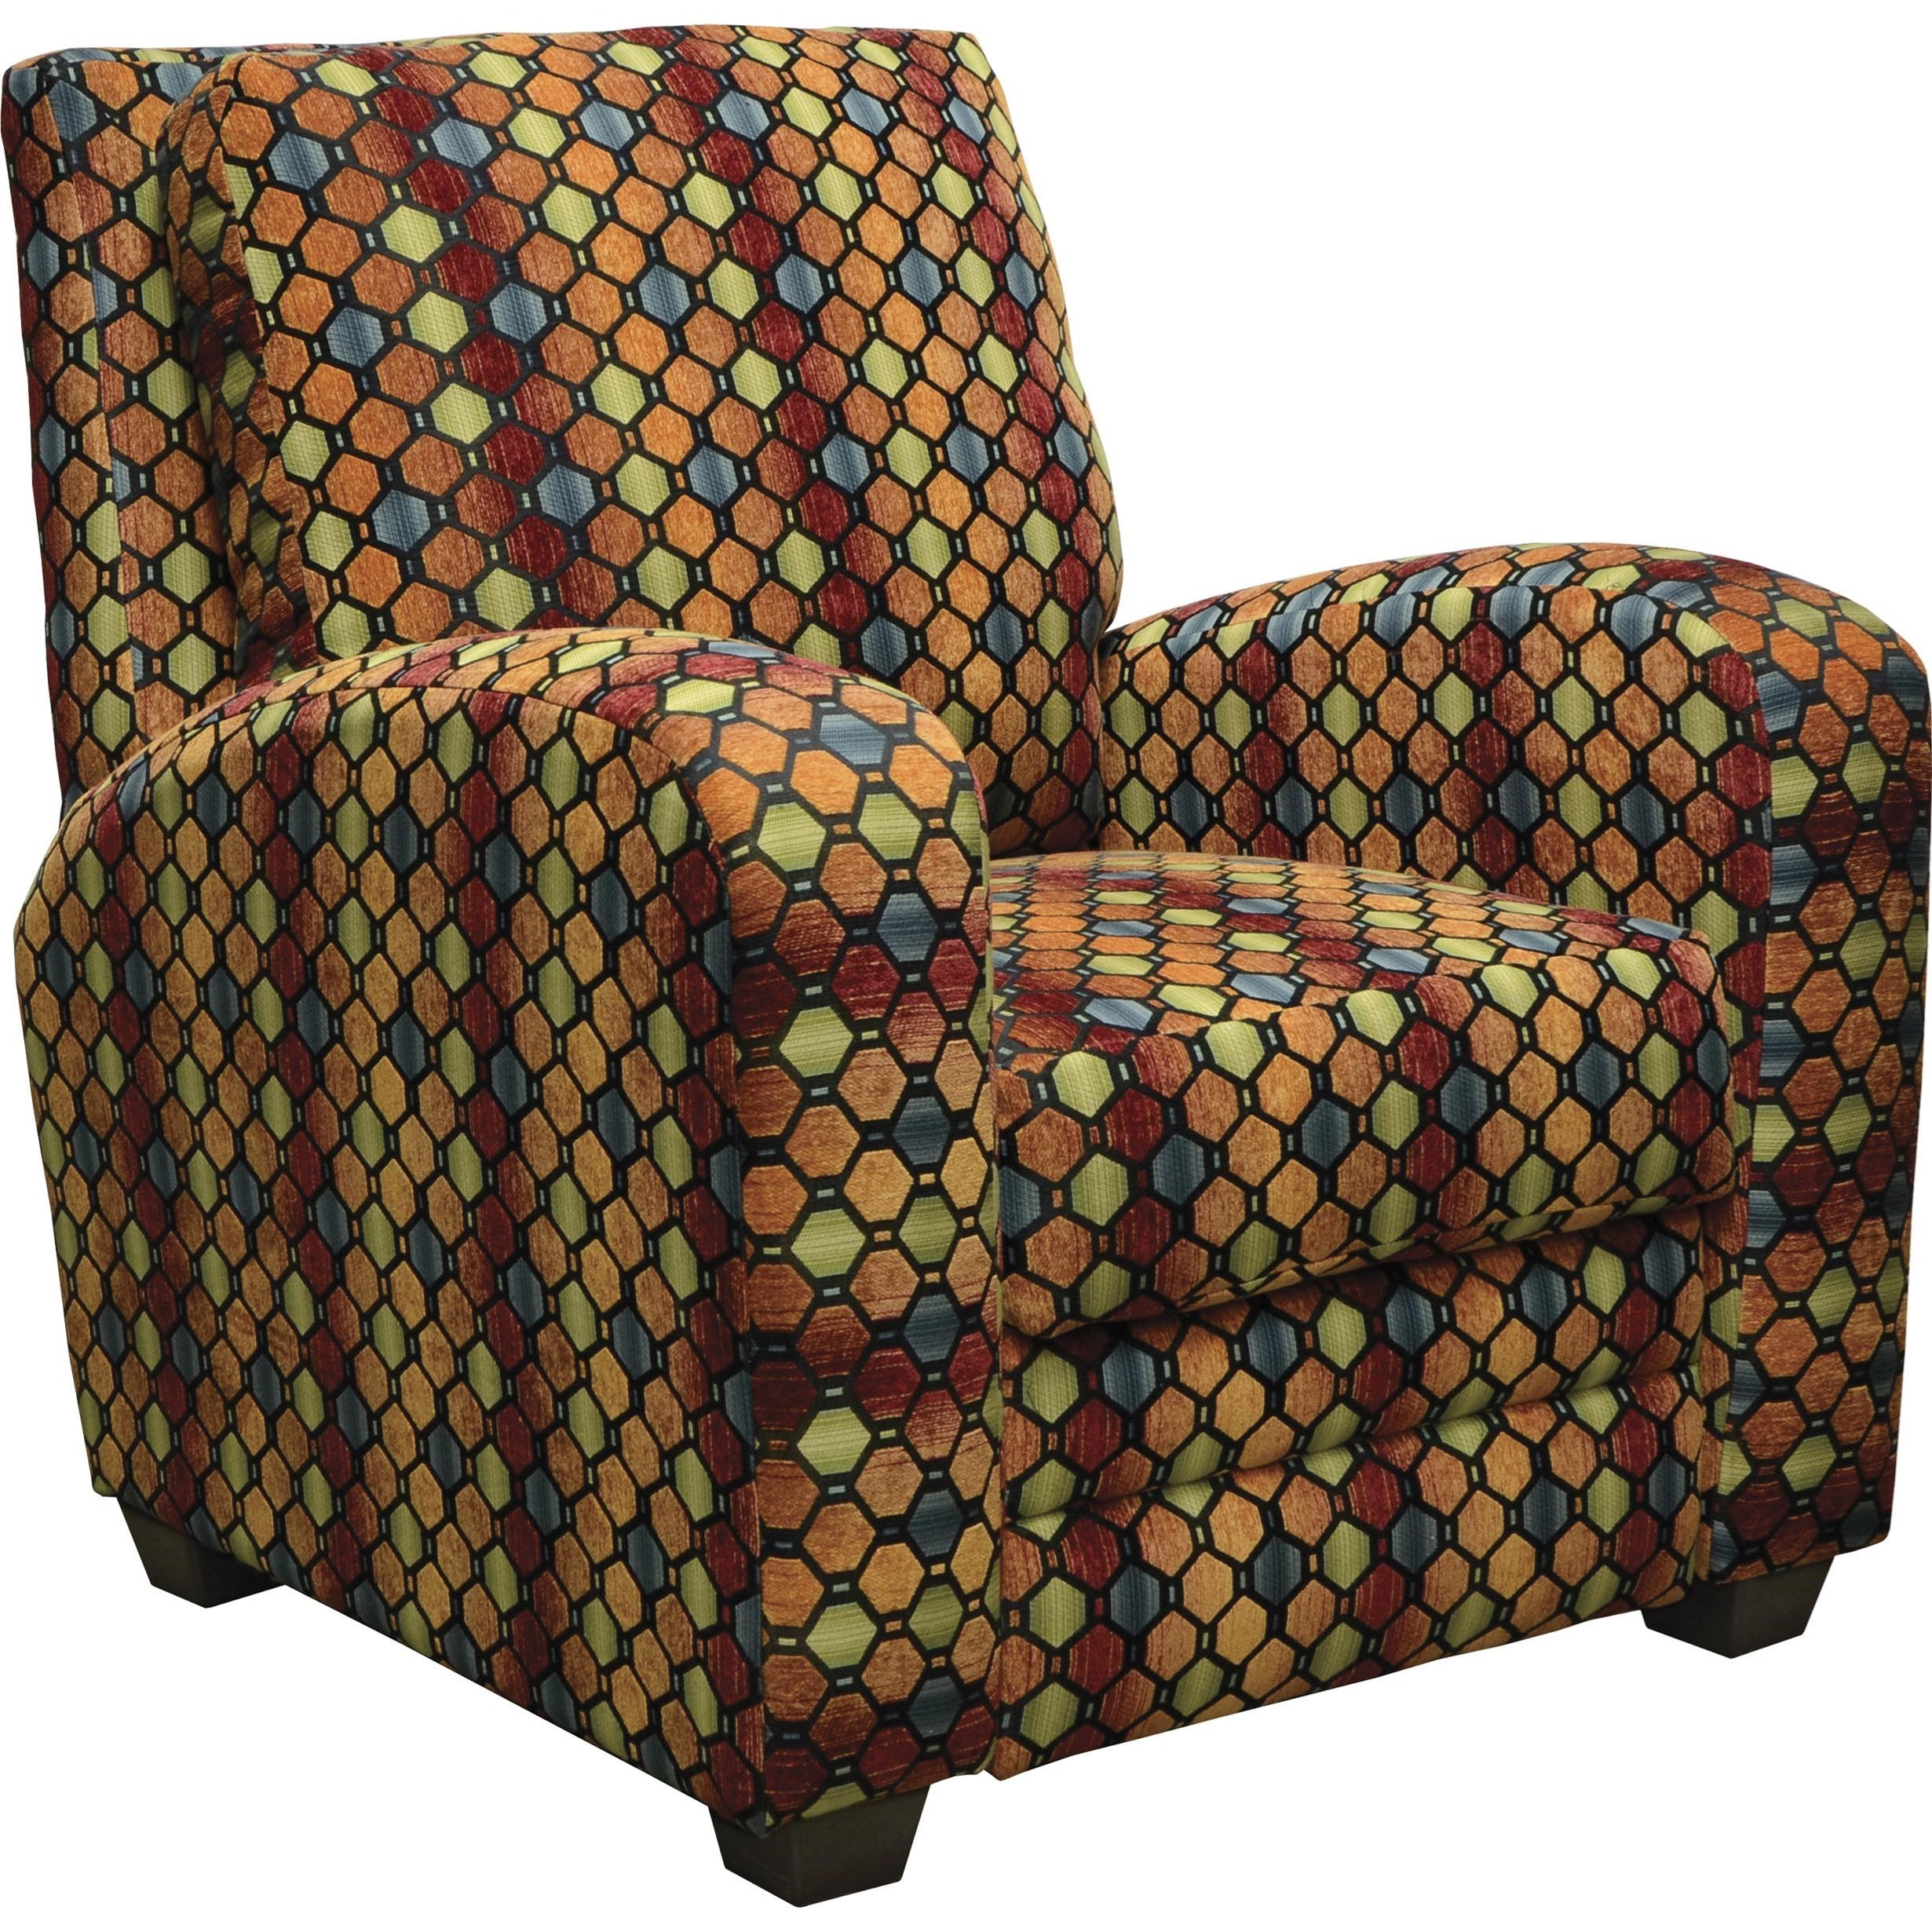 Jackson Furniture Halle Reclining Chair - Item Number: 4381-11-2845-54